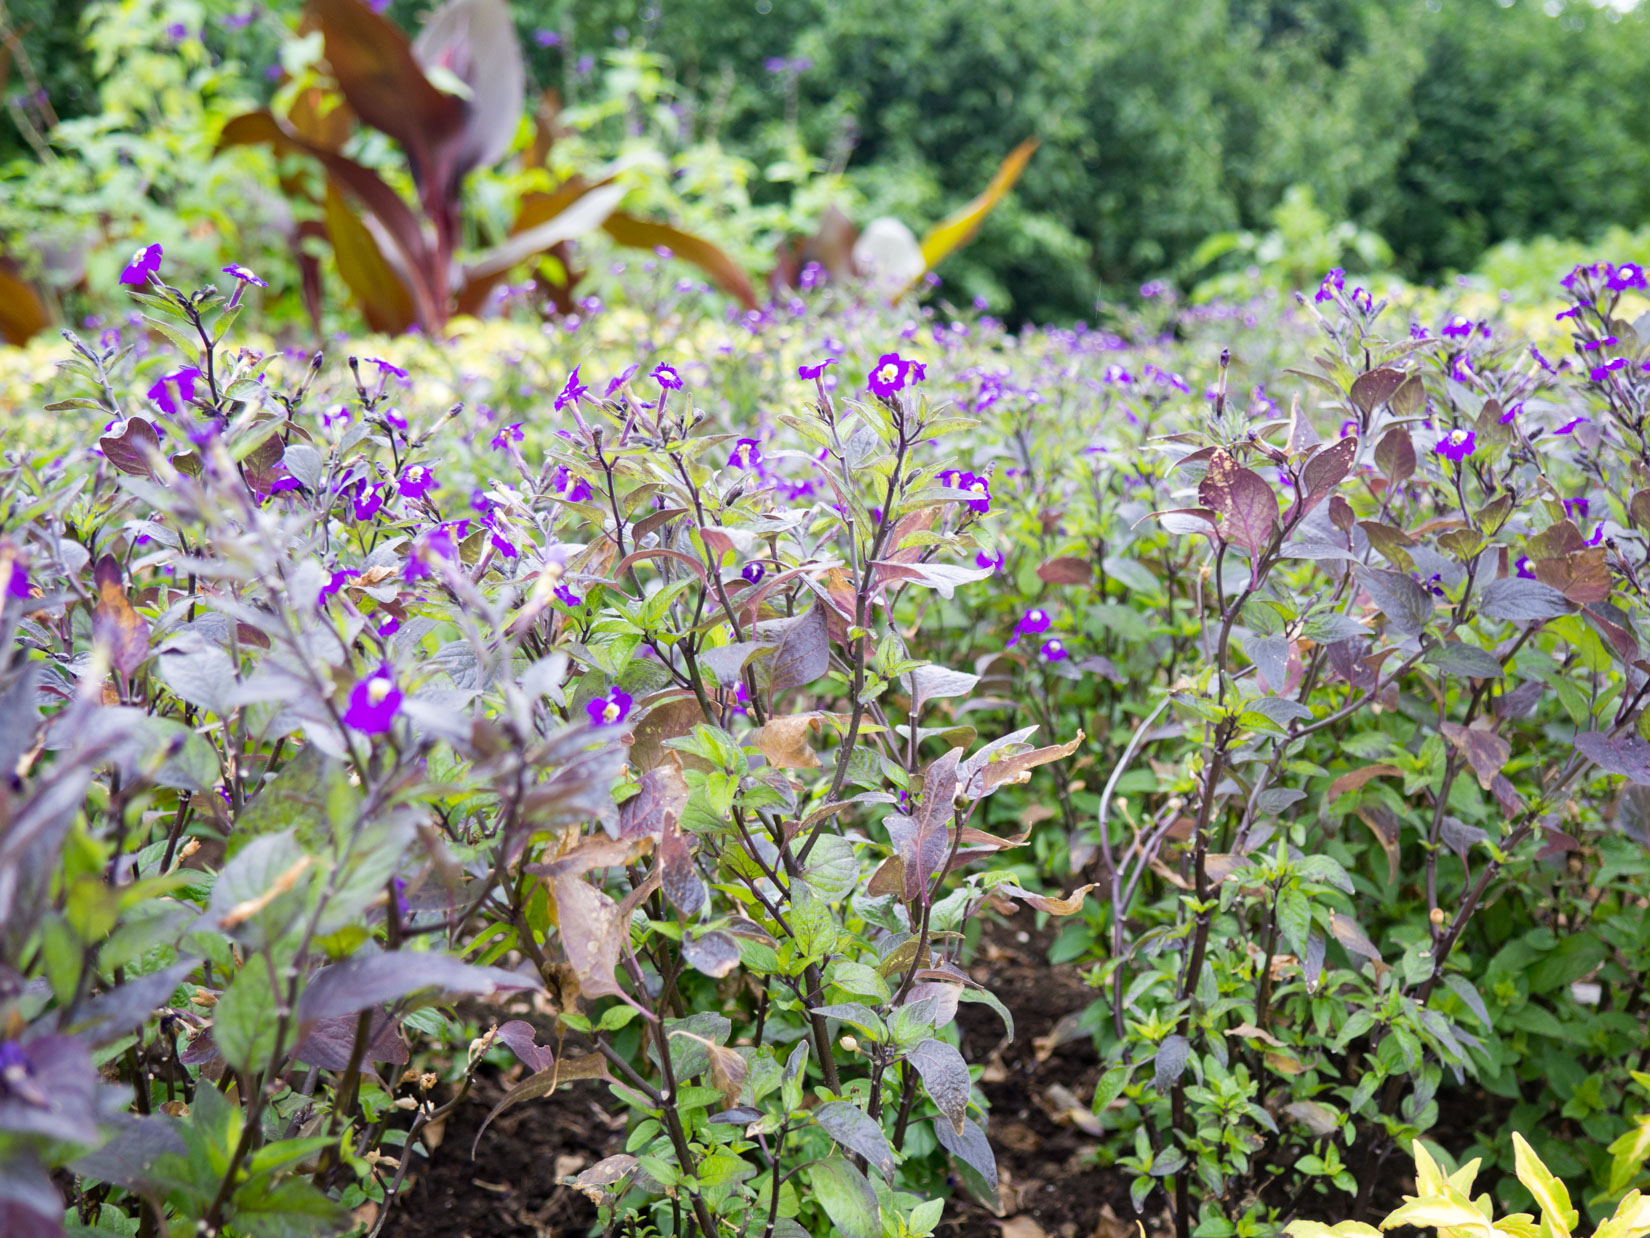 Many Purple Flowers in Garden